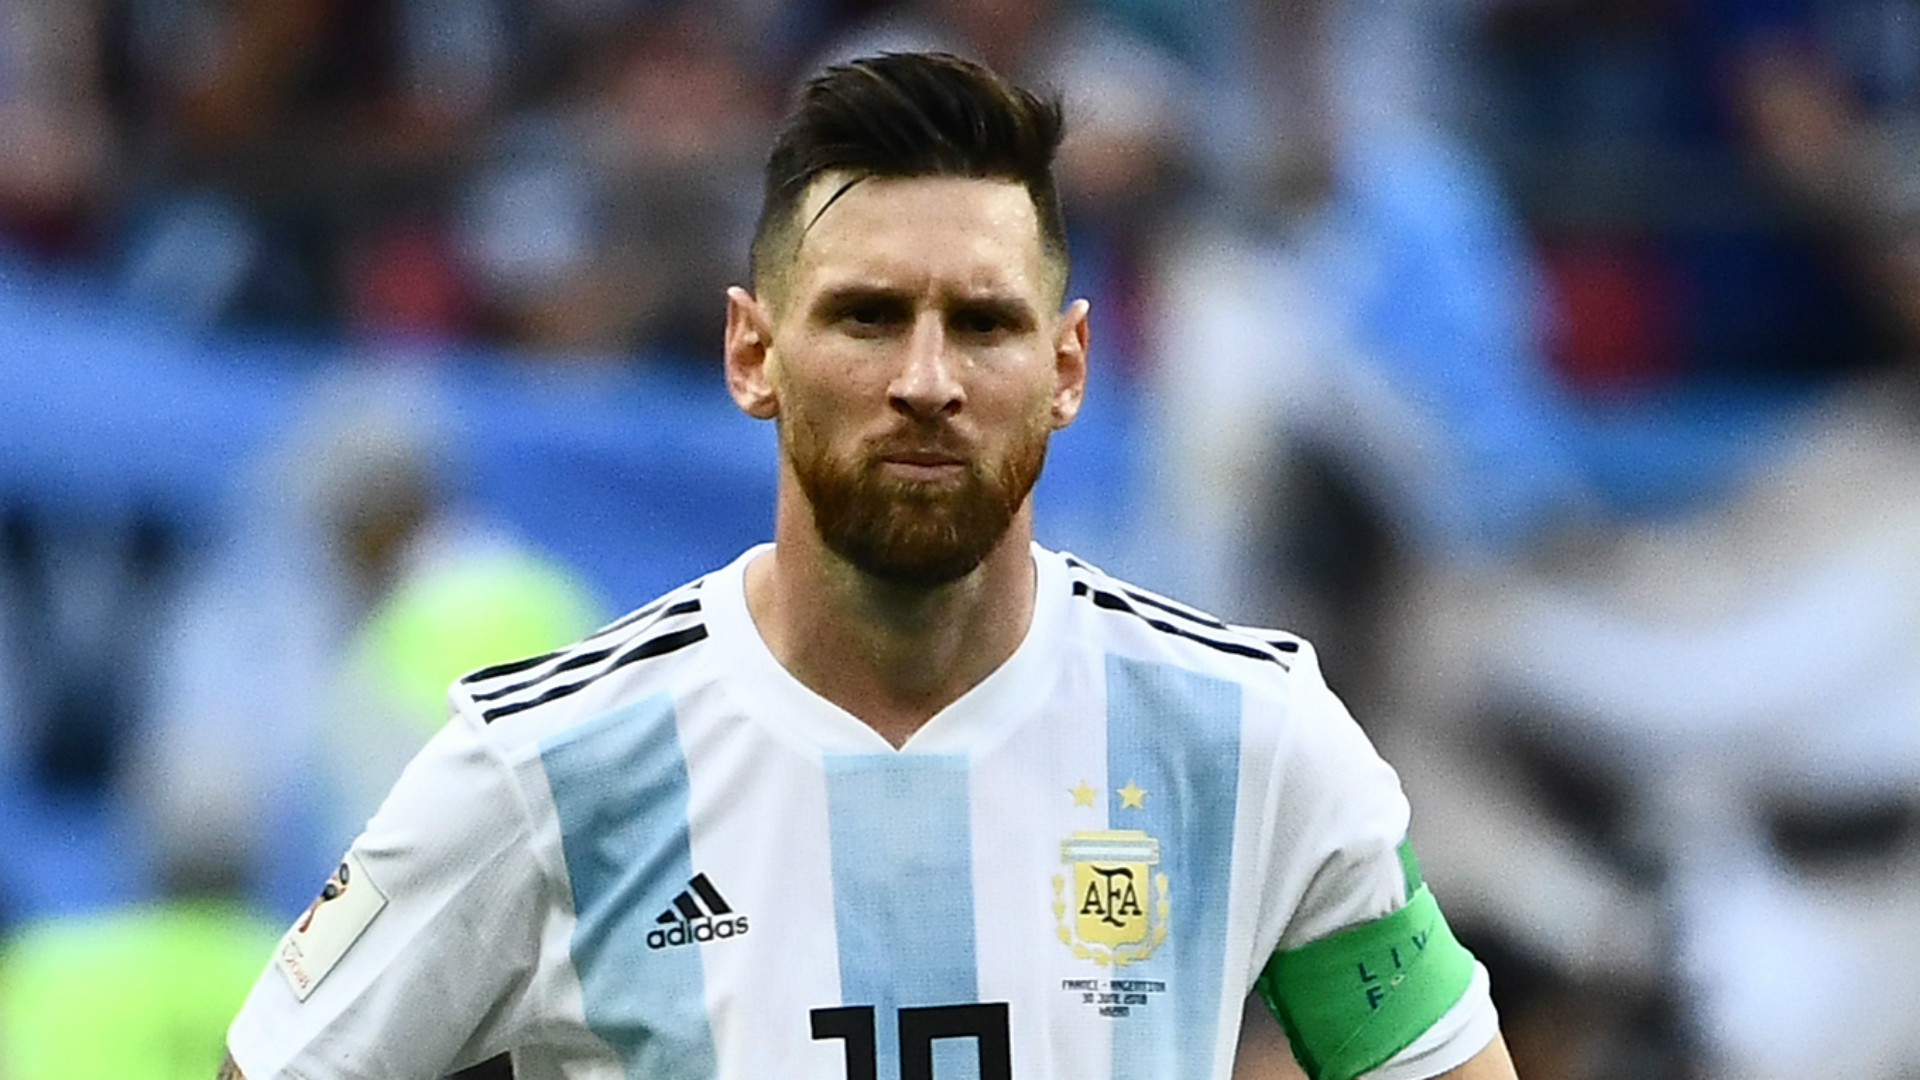 Man City deny offering Lionel Messi triple his salary to join